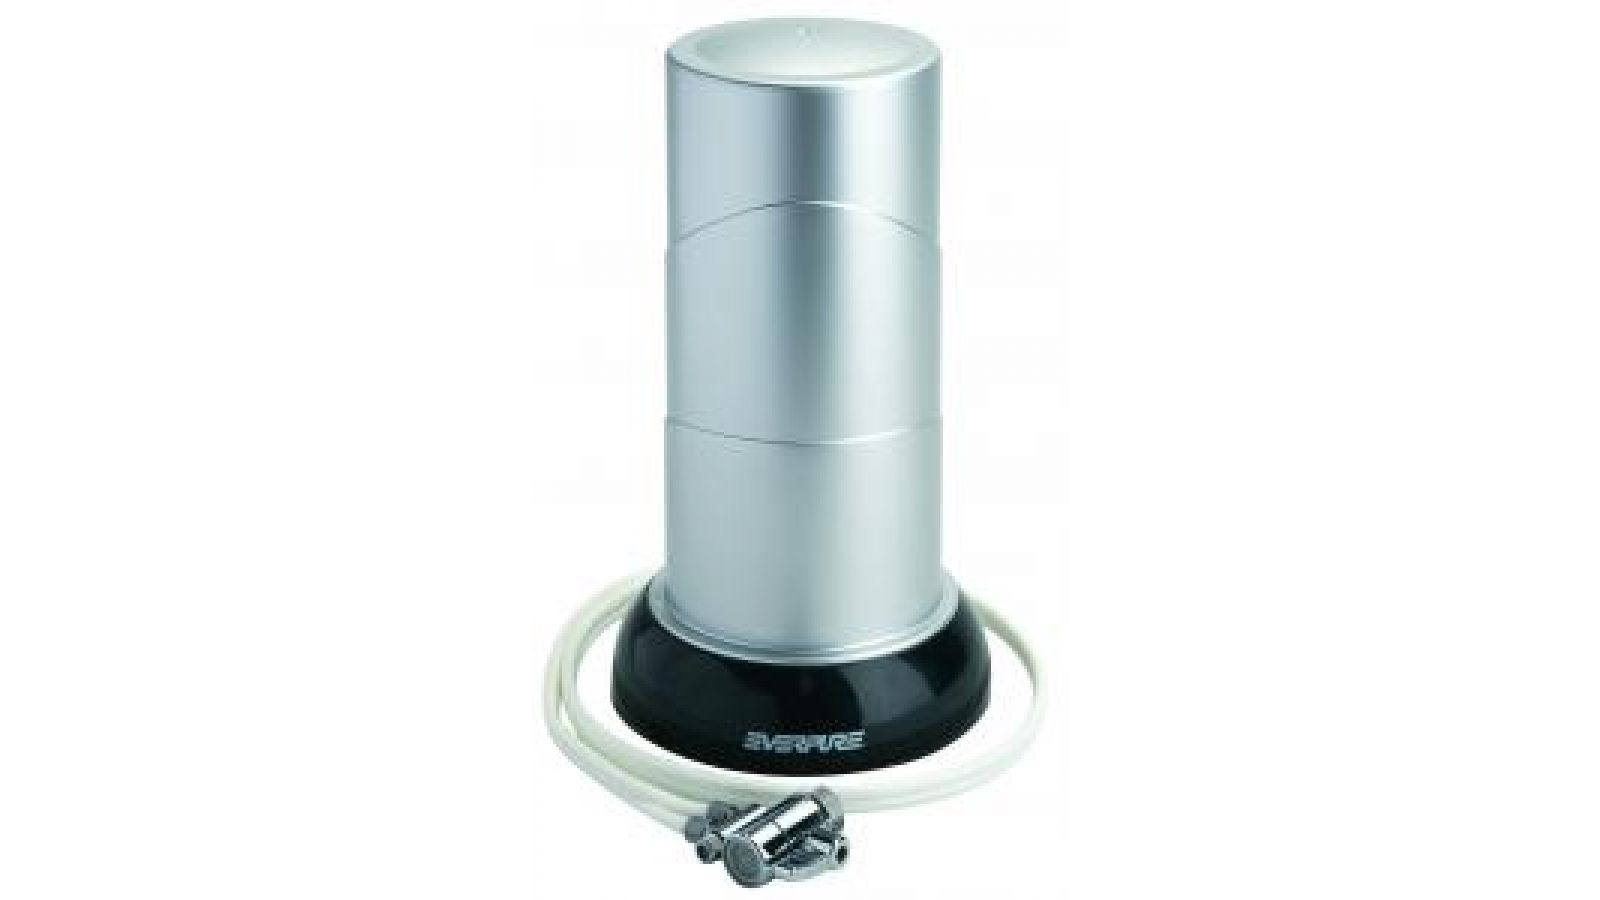 Countertop Drinking Water System by Everpure